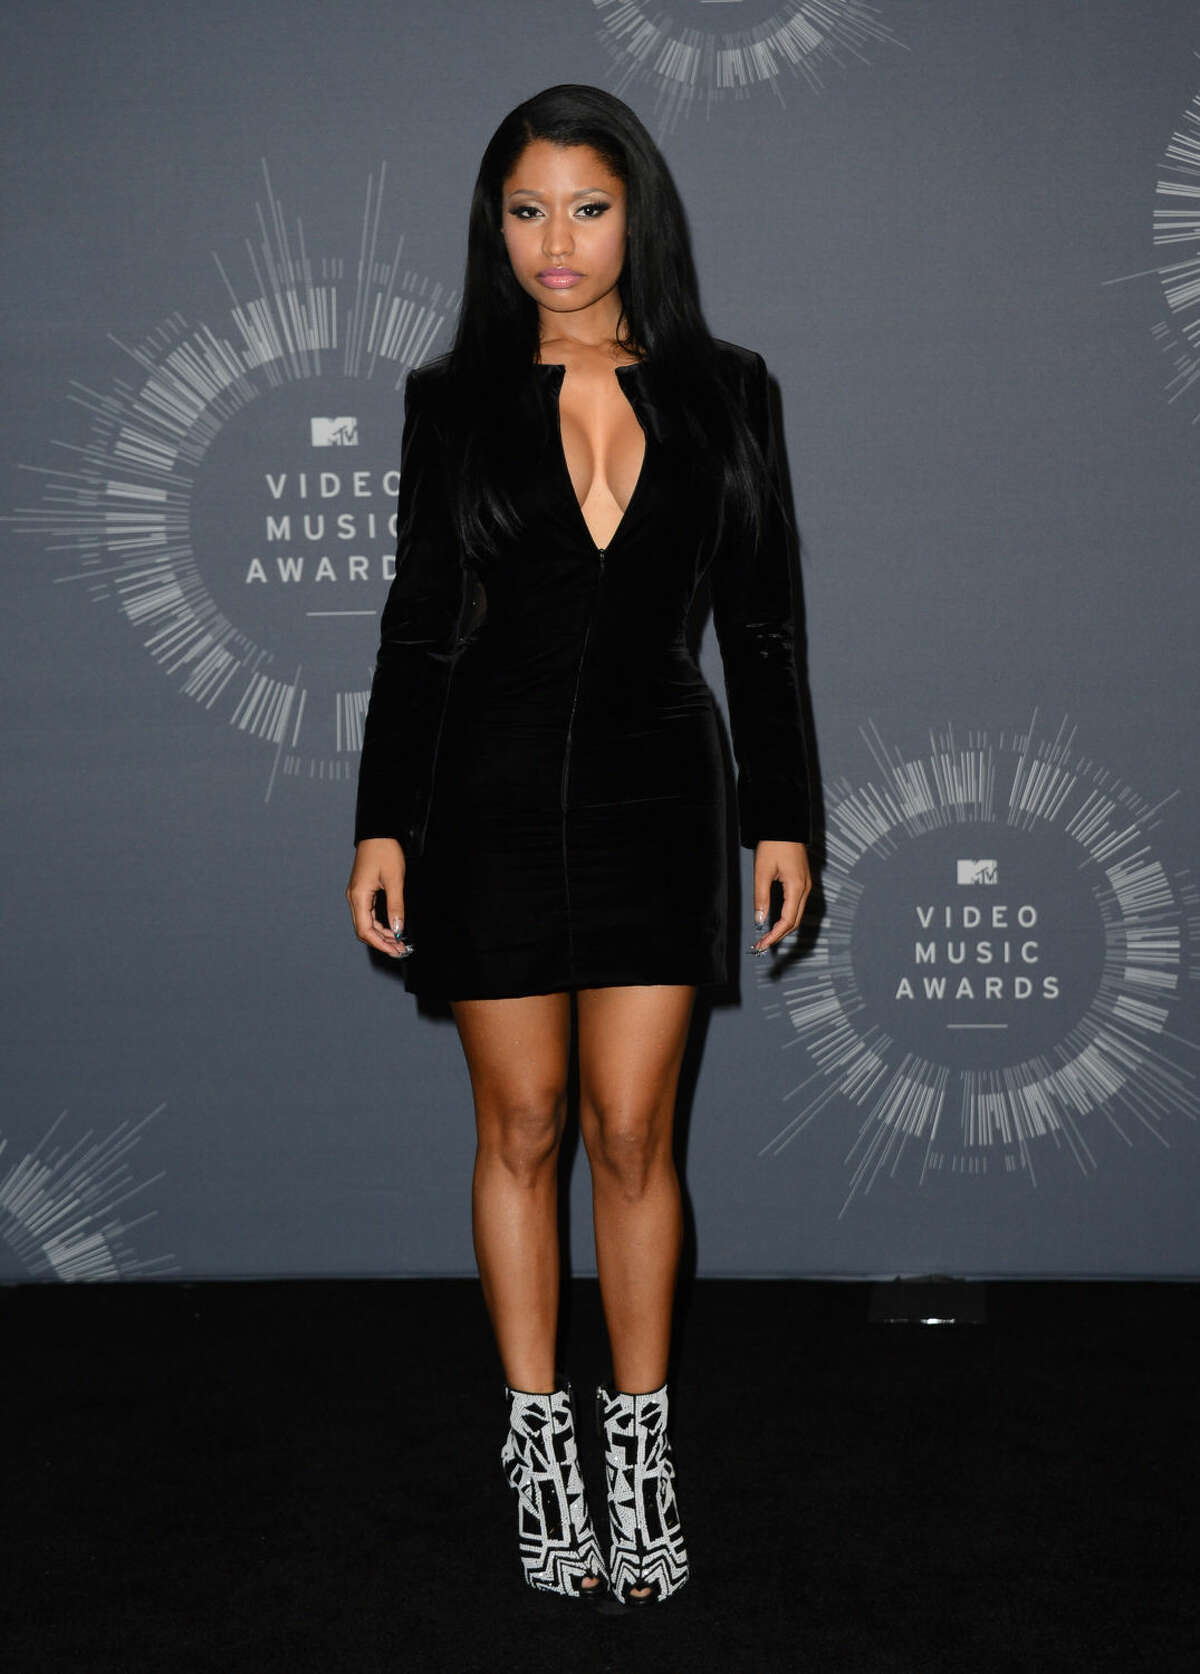 Nicki Minaj poses in the press room at the MTV Video Music Awards at The Forum on Sunday, Aug. 24, 2014, in Inglewood, Calif. (Photo by Jordan Strauss/Invision/AP)